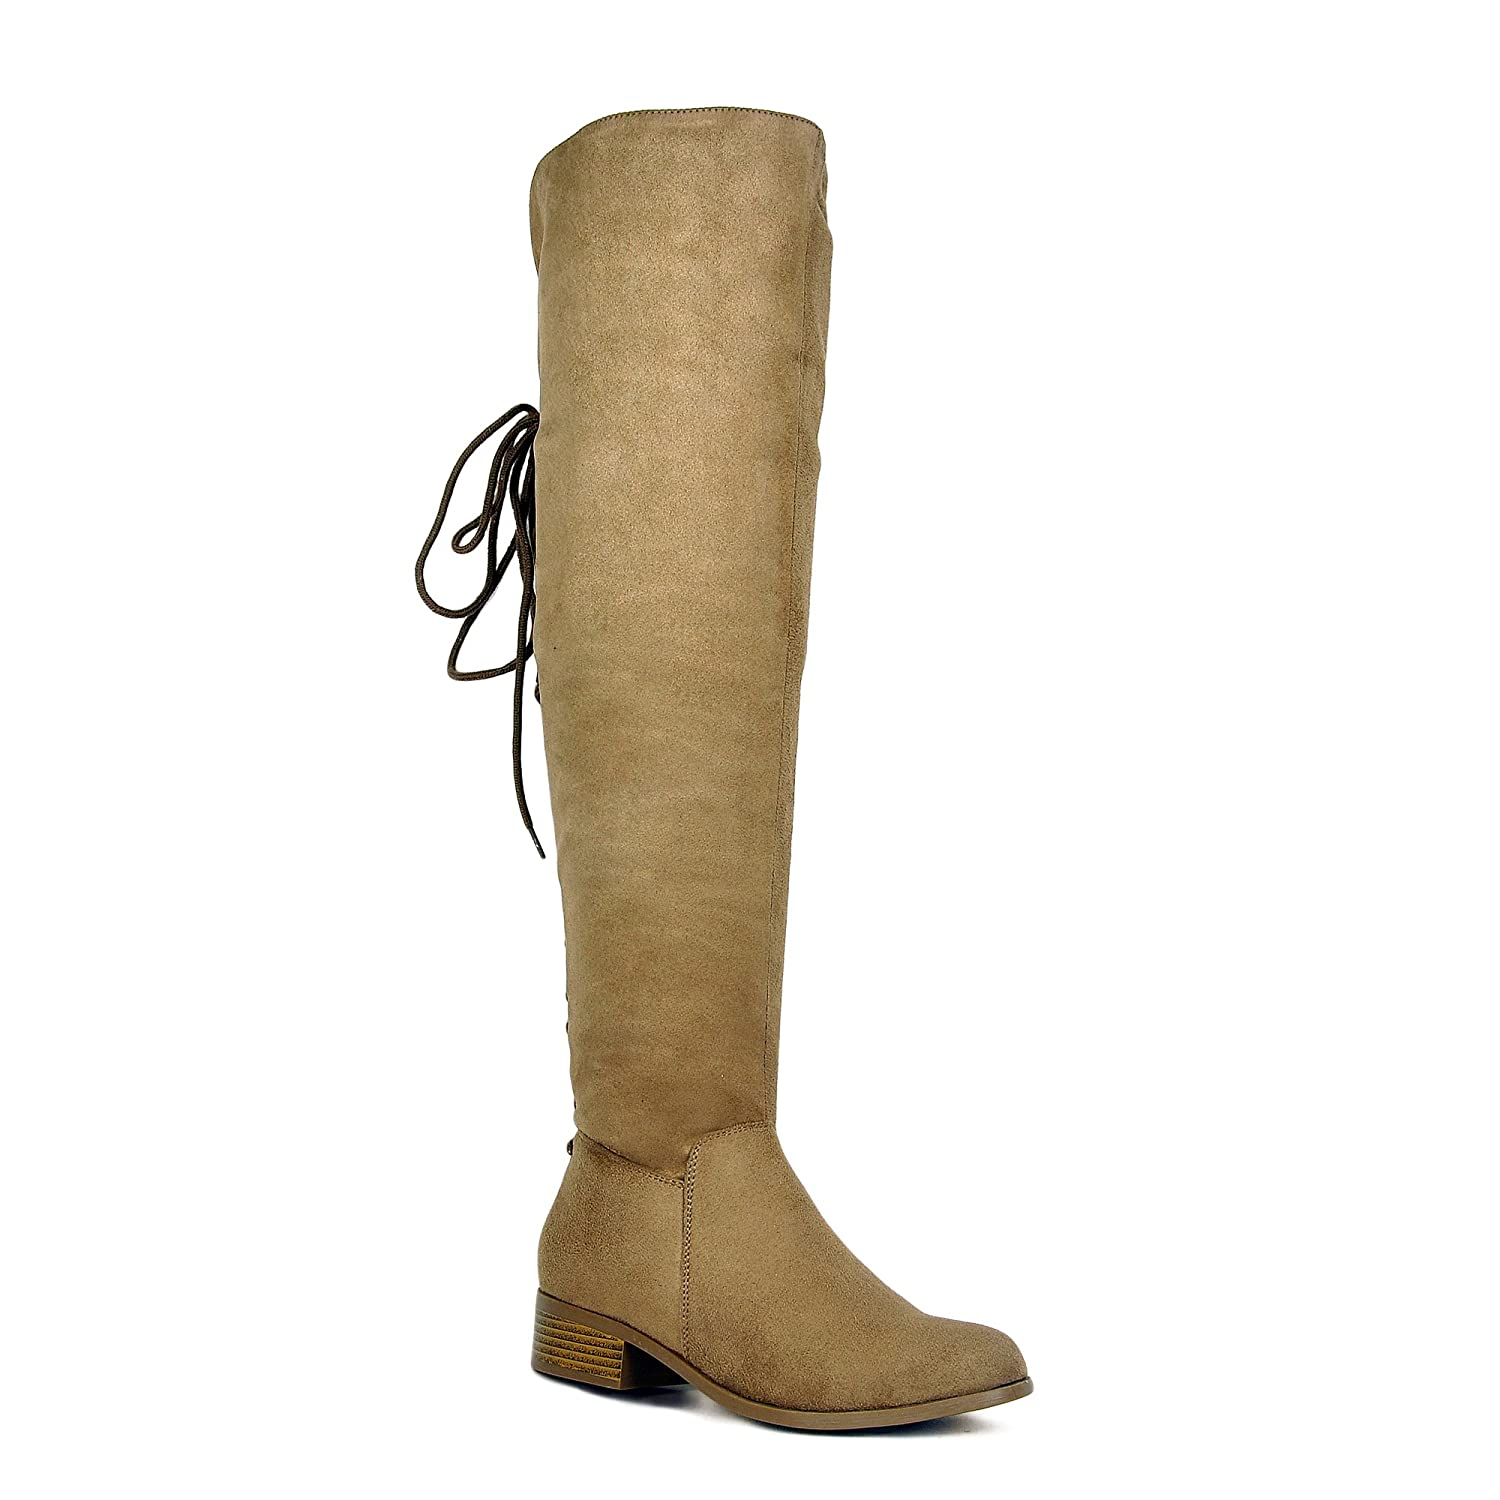 Women's Taupe Faux Suede OTK Back Corset Lace-up Fold Over Cuff Flat Heel Boots - DeluxeAdultCostumes.com